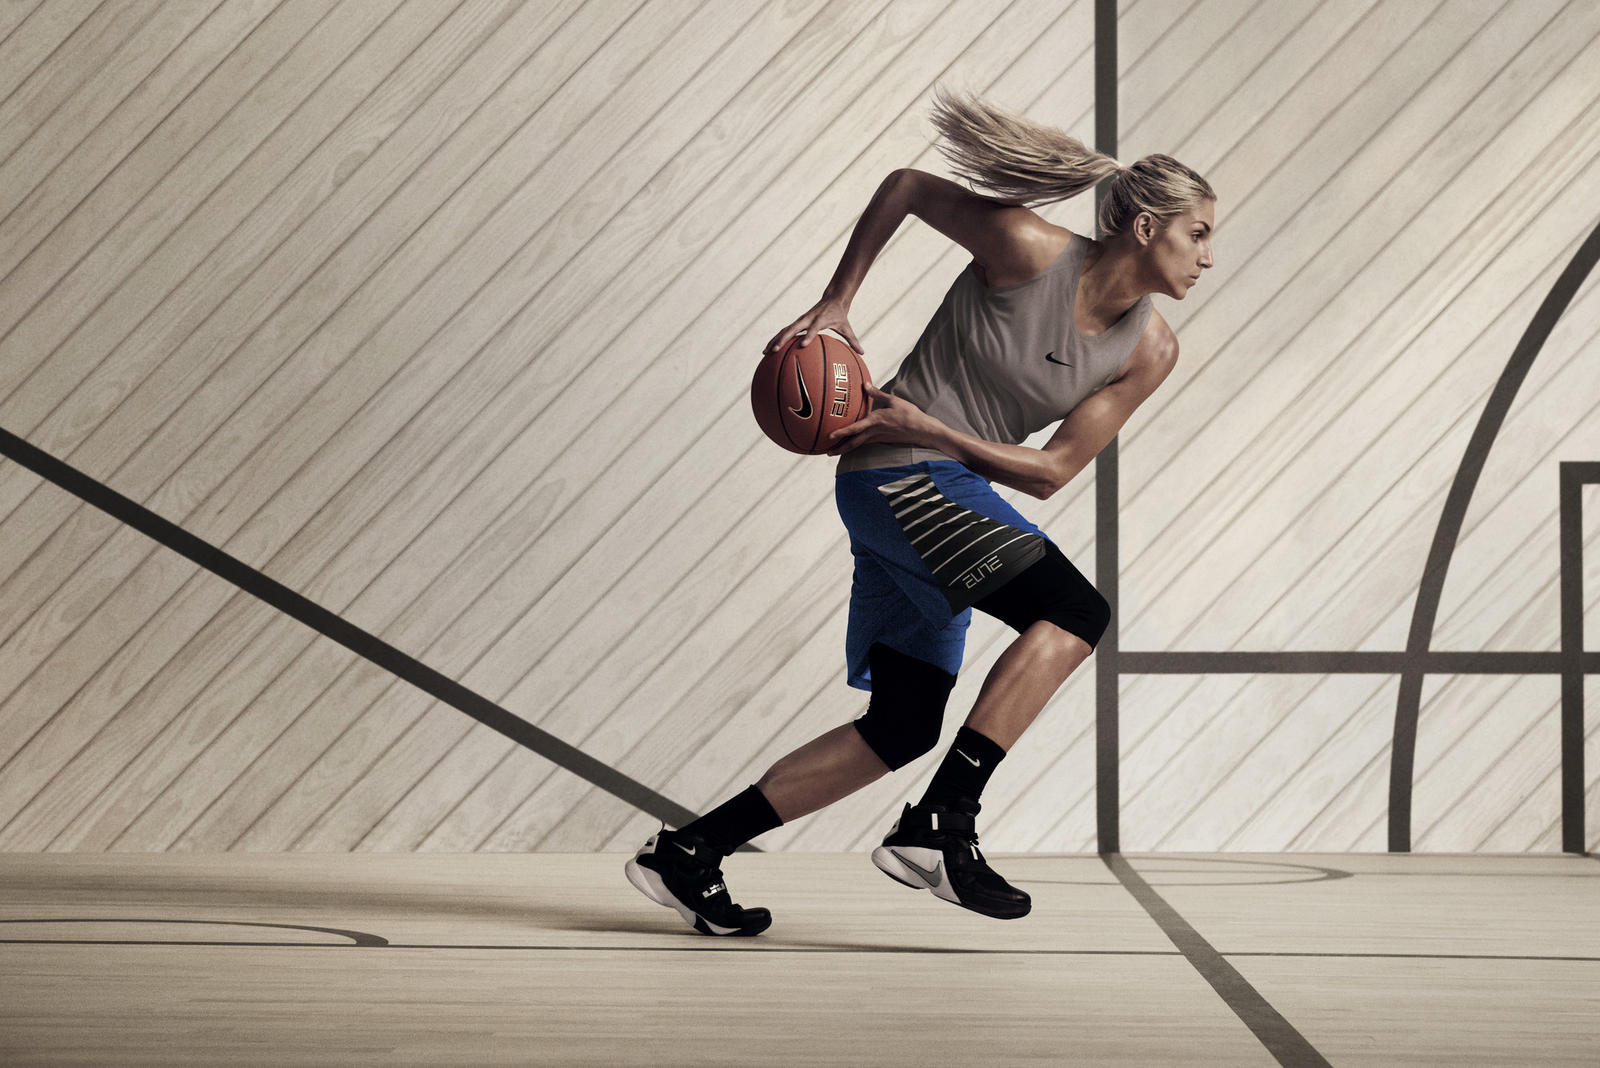 Locker Wallpaper For Girls Nike Basketball Unveils Women S Apparel Collection Nike News